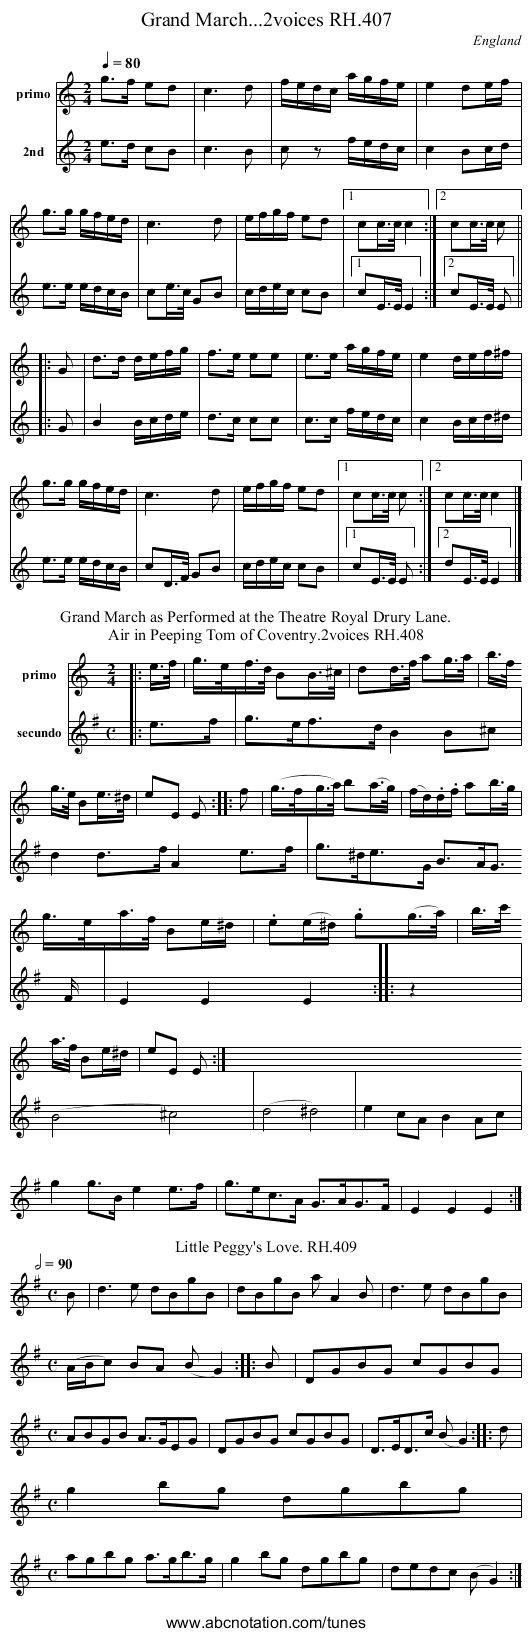 Grand March...2voices RH.407 - staff notation